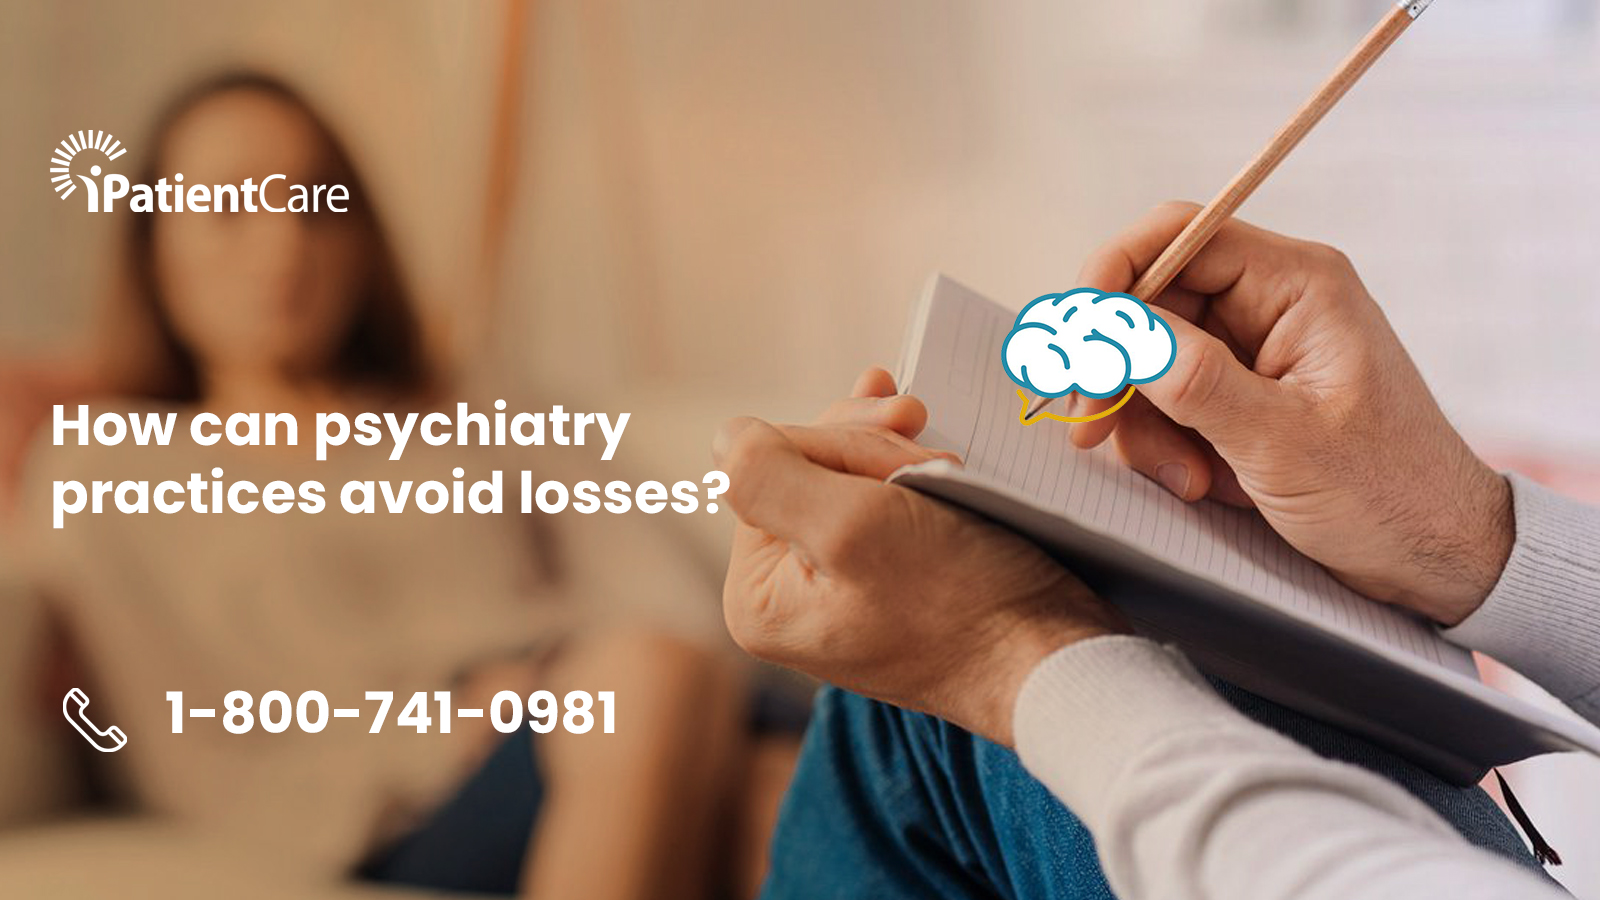 iPatientCare Blog - How can psychiatry practices avoid losses